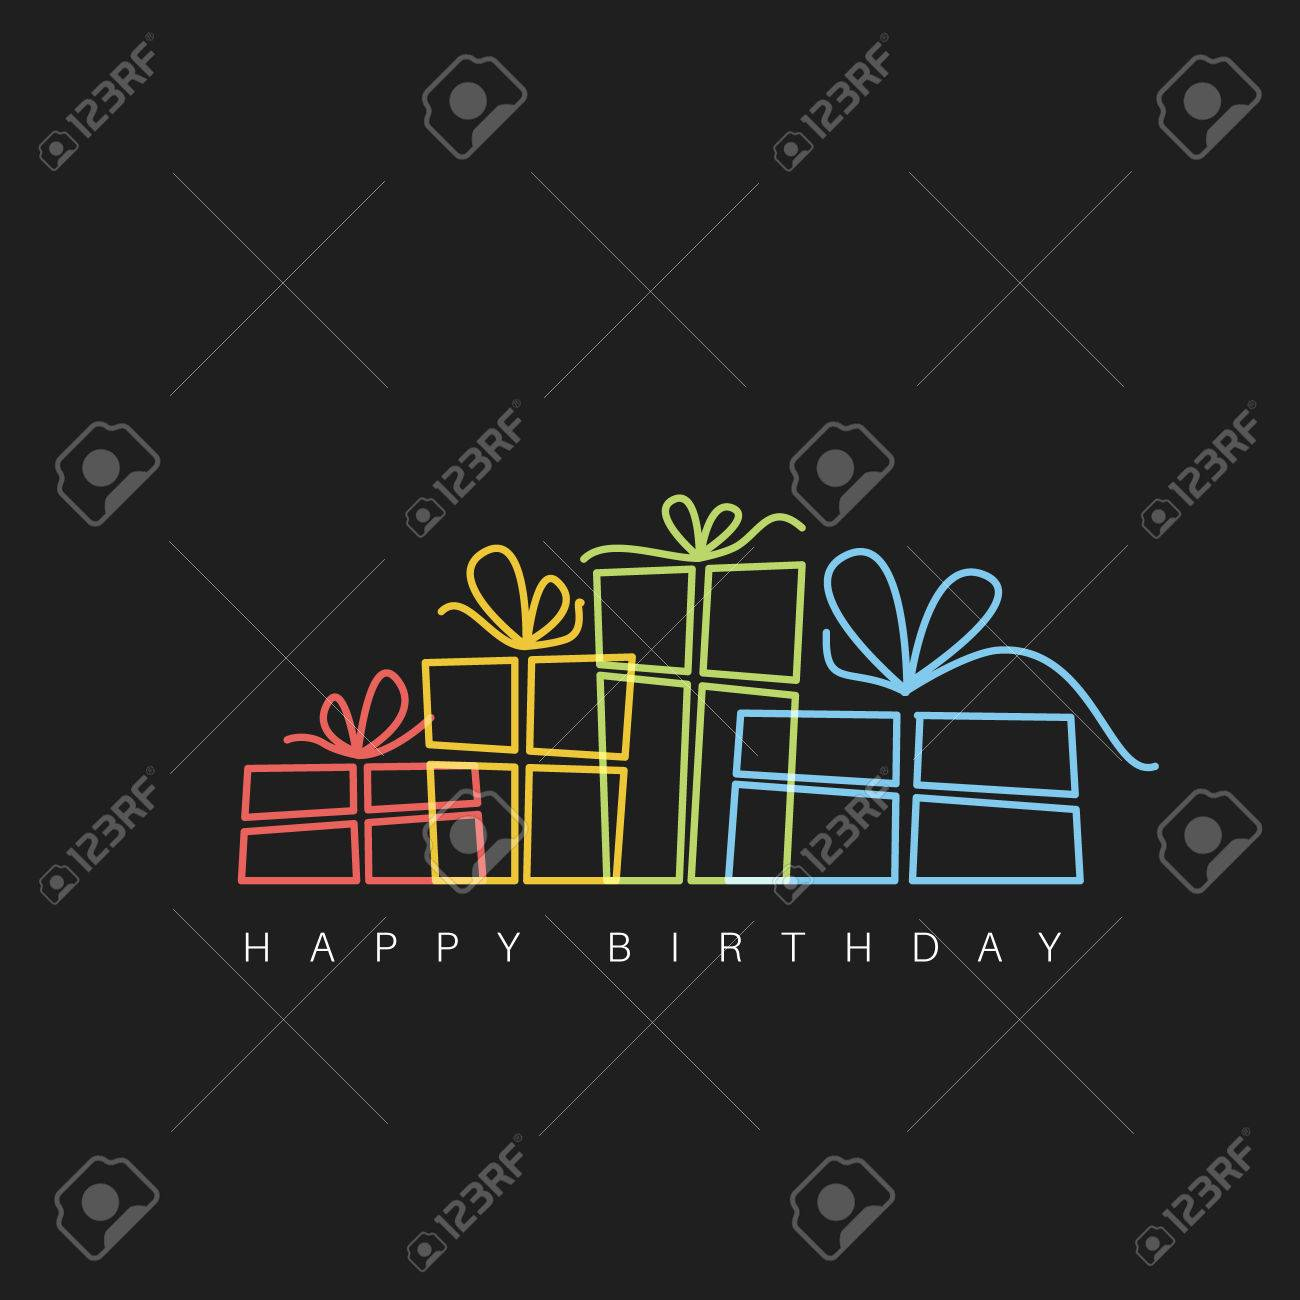 Dark Happy birthday fresh illustration with presents made by thin neon lines - 57912891